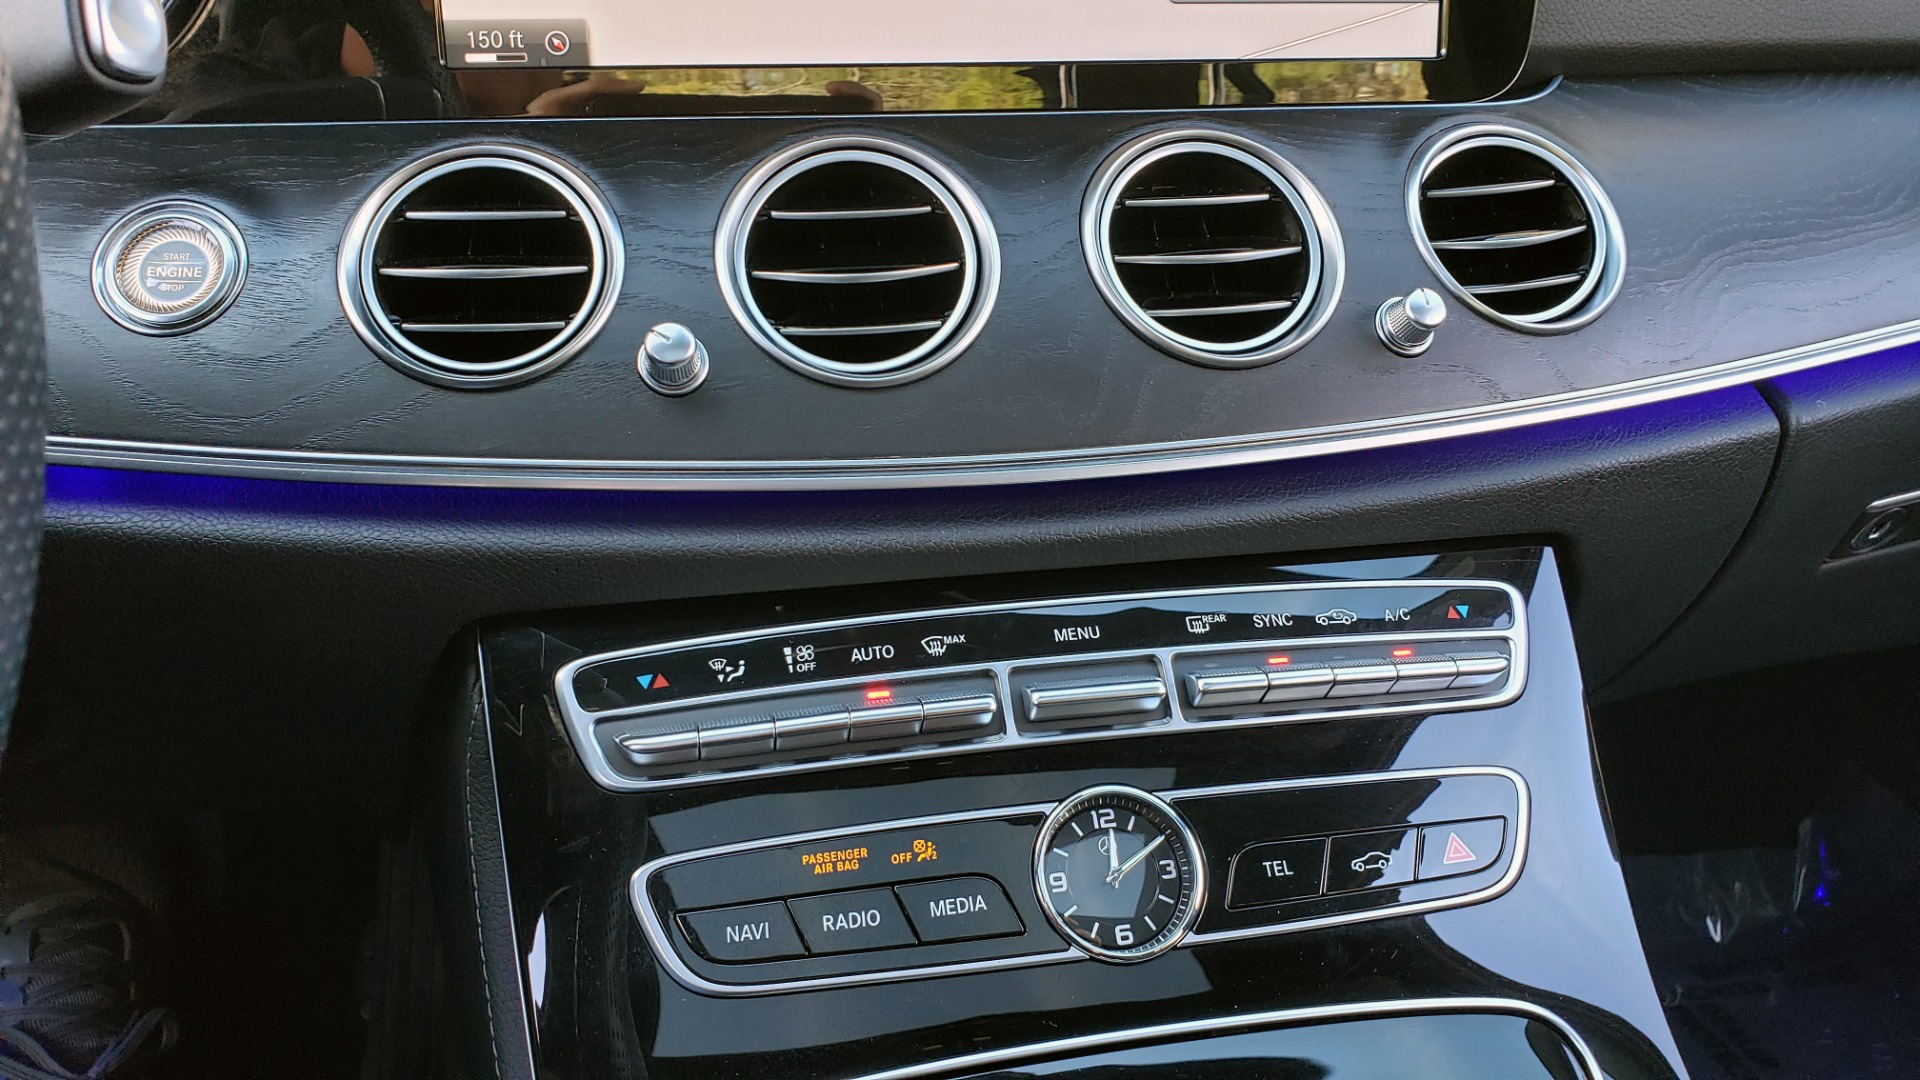 Used 2017 Mercedes-Benz E-CLASS E 300 PREMIUM / NAV / SUNROOF / BURMESTER / HTD STS / REARVIEW for sale Sold at Formula Imports in Charlotte NC 28227 51